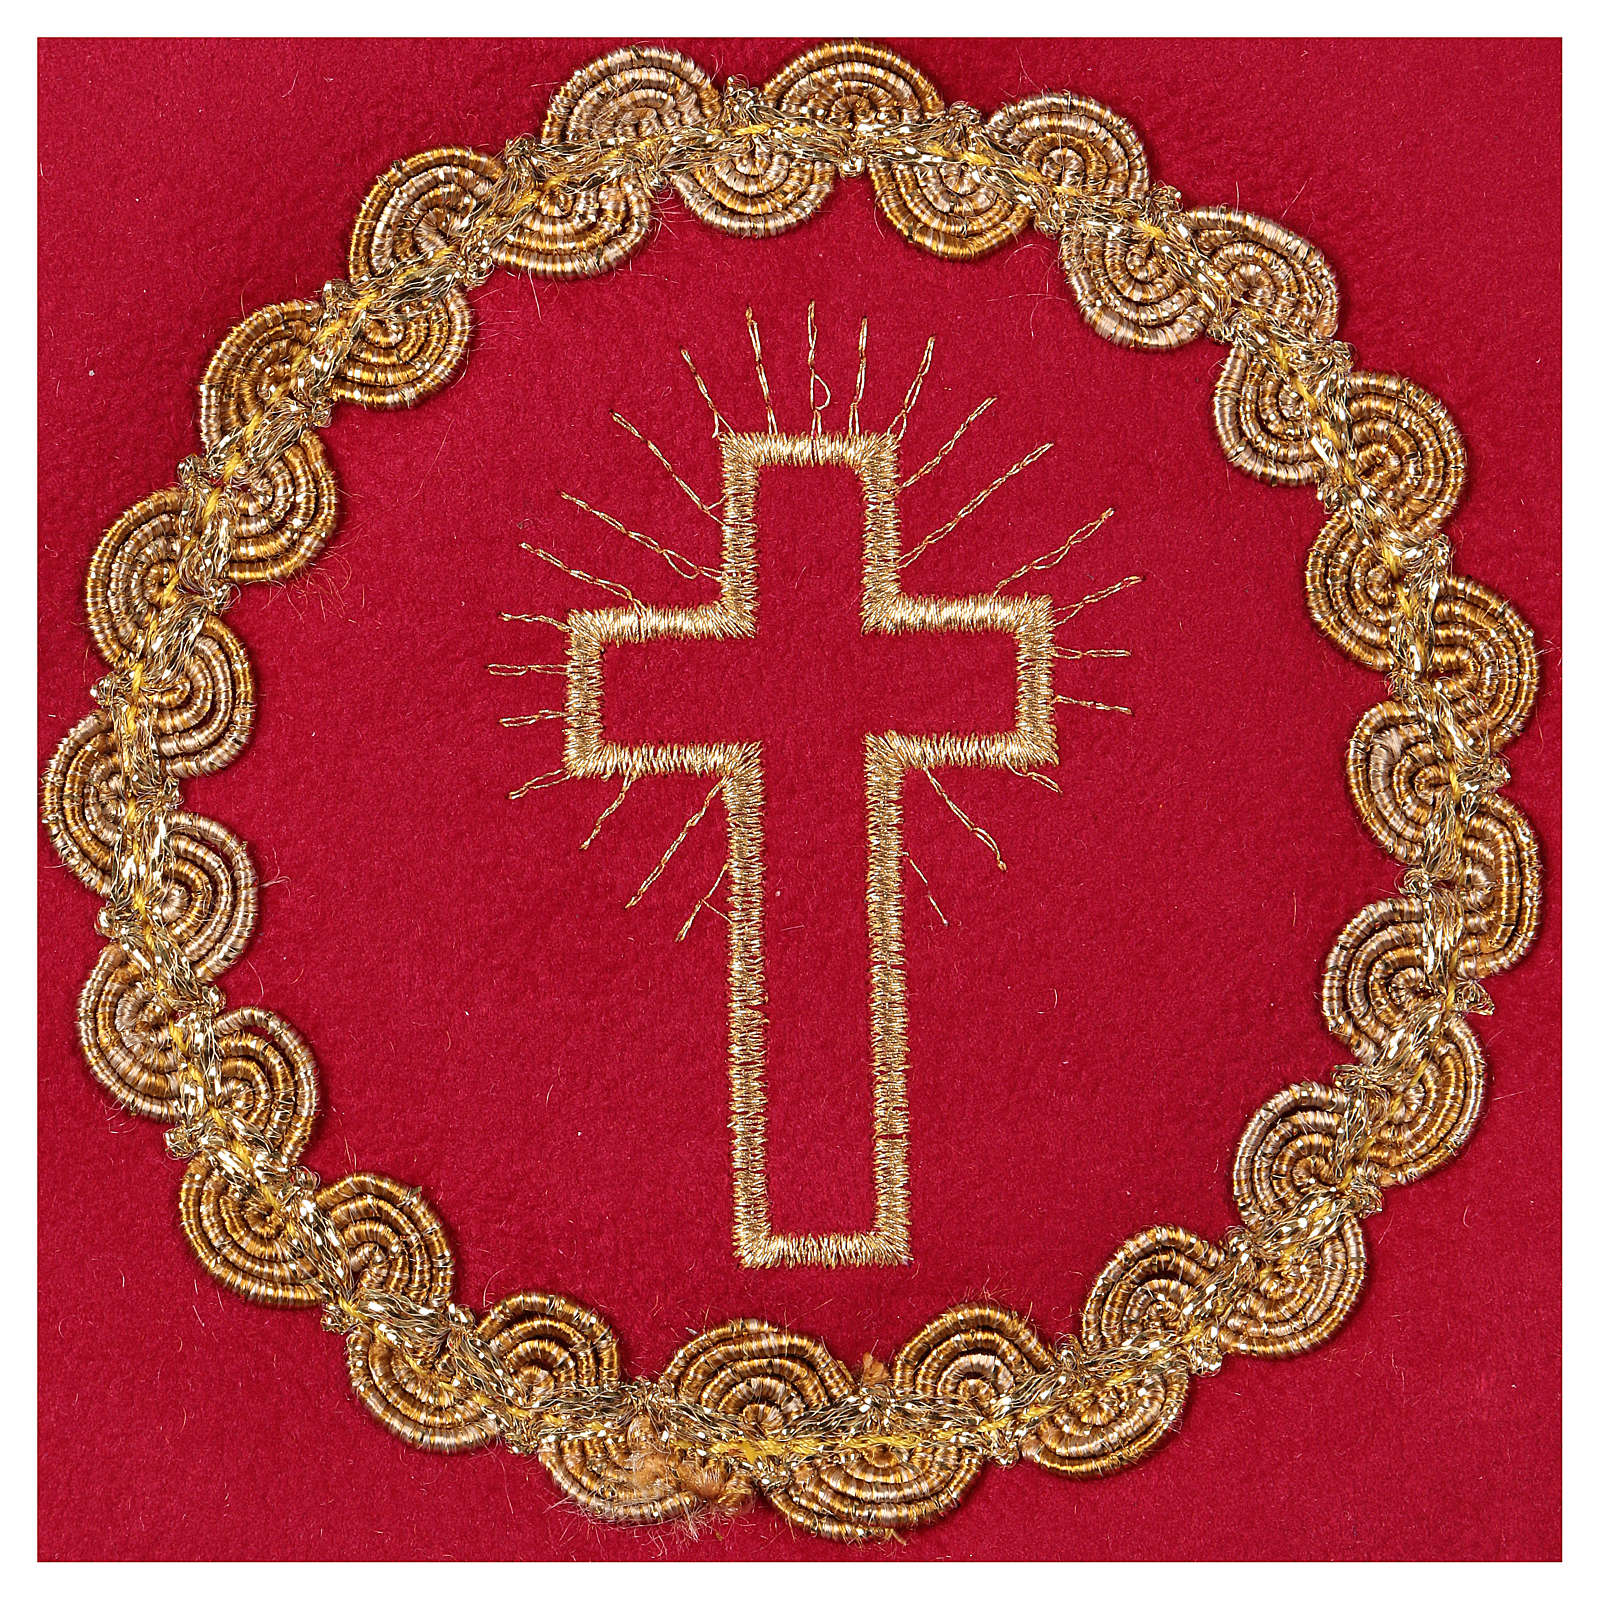 Chalice pall with cross embroidery, red flocked fabric 4